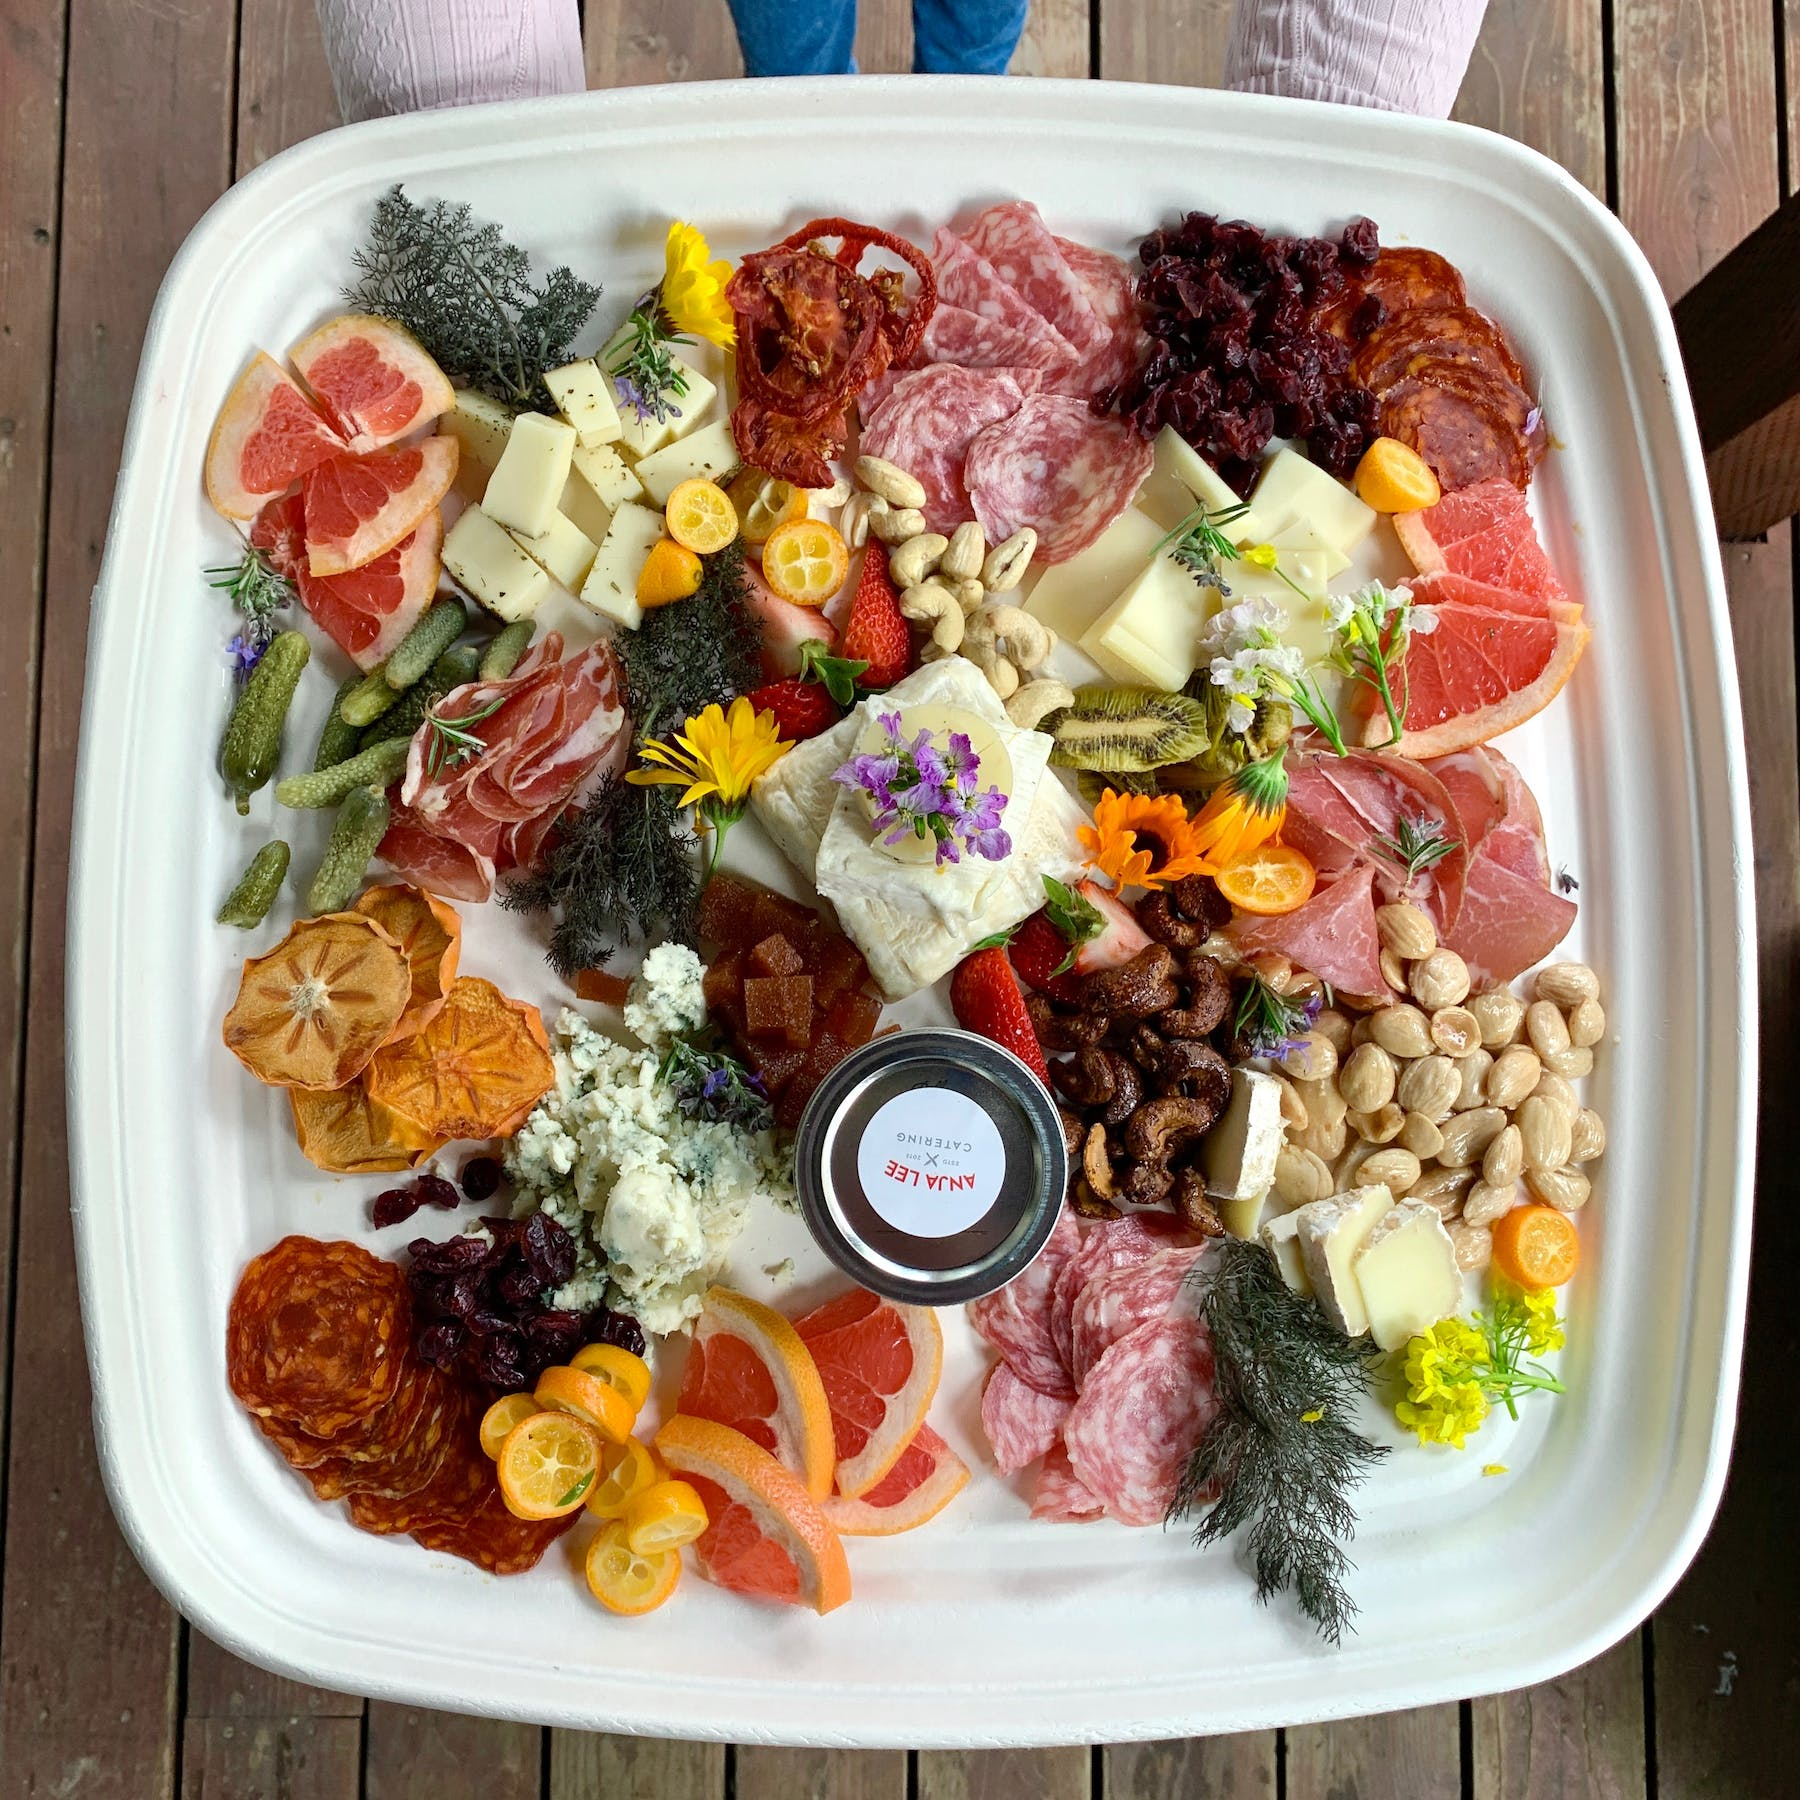 a plastic container filled with different types of food on a plate